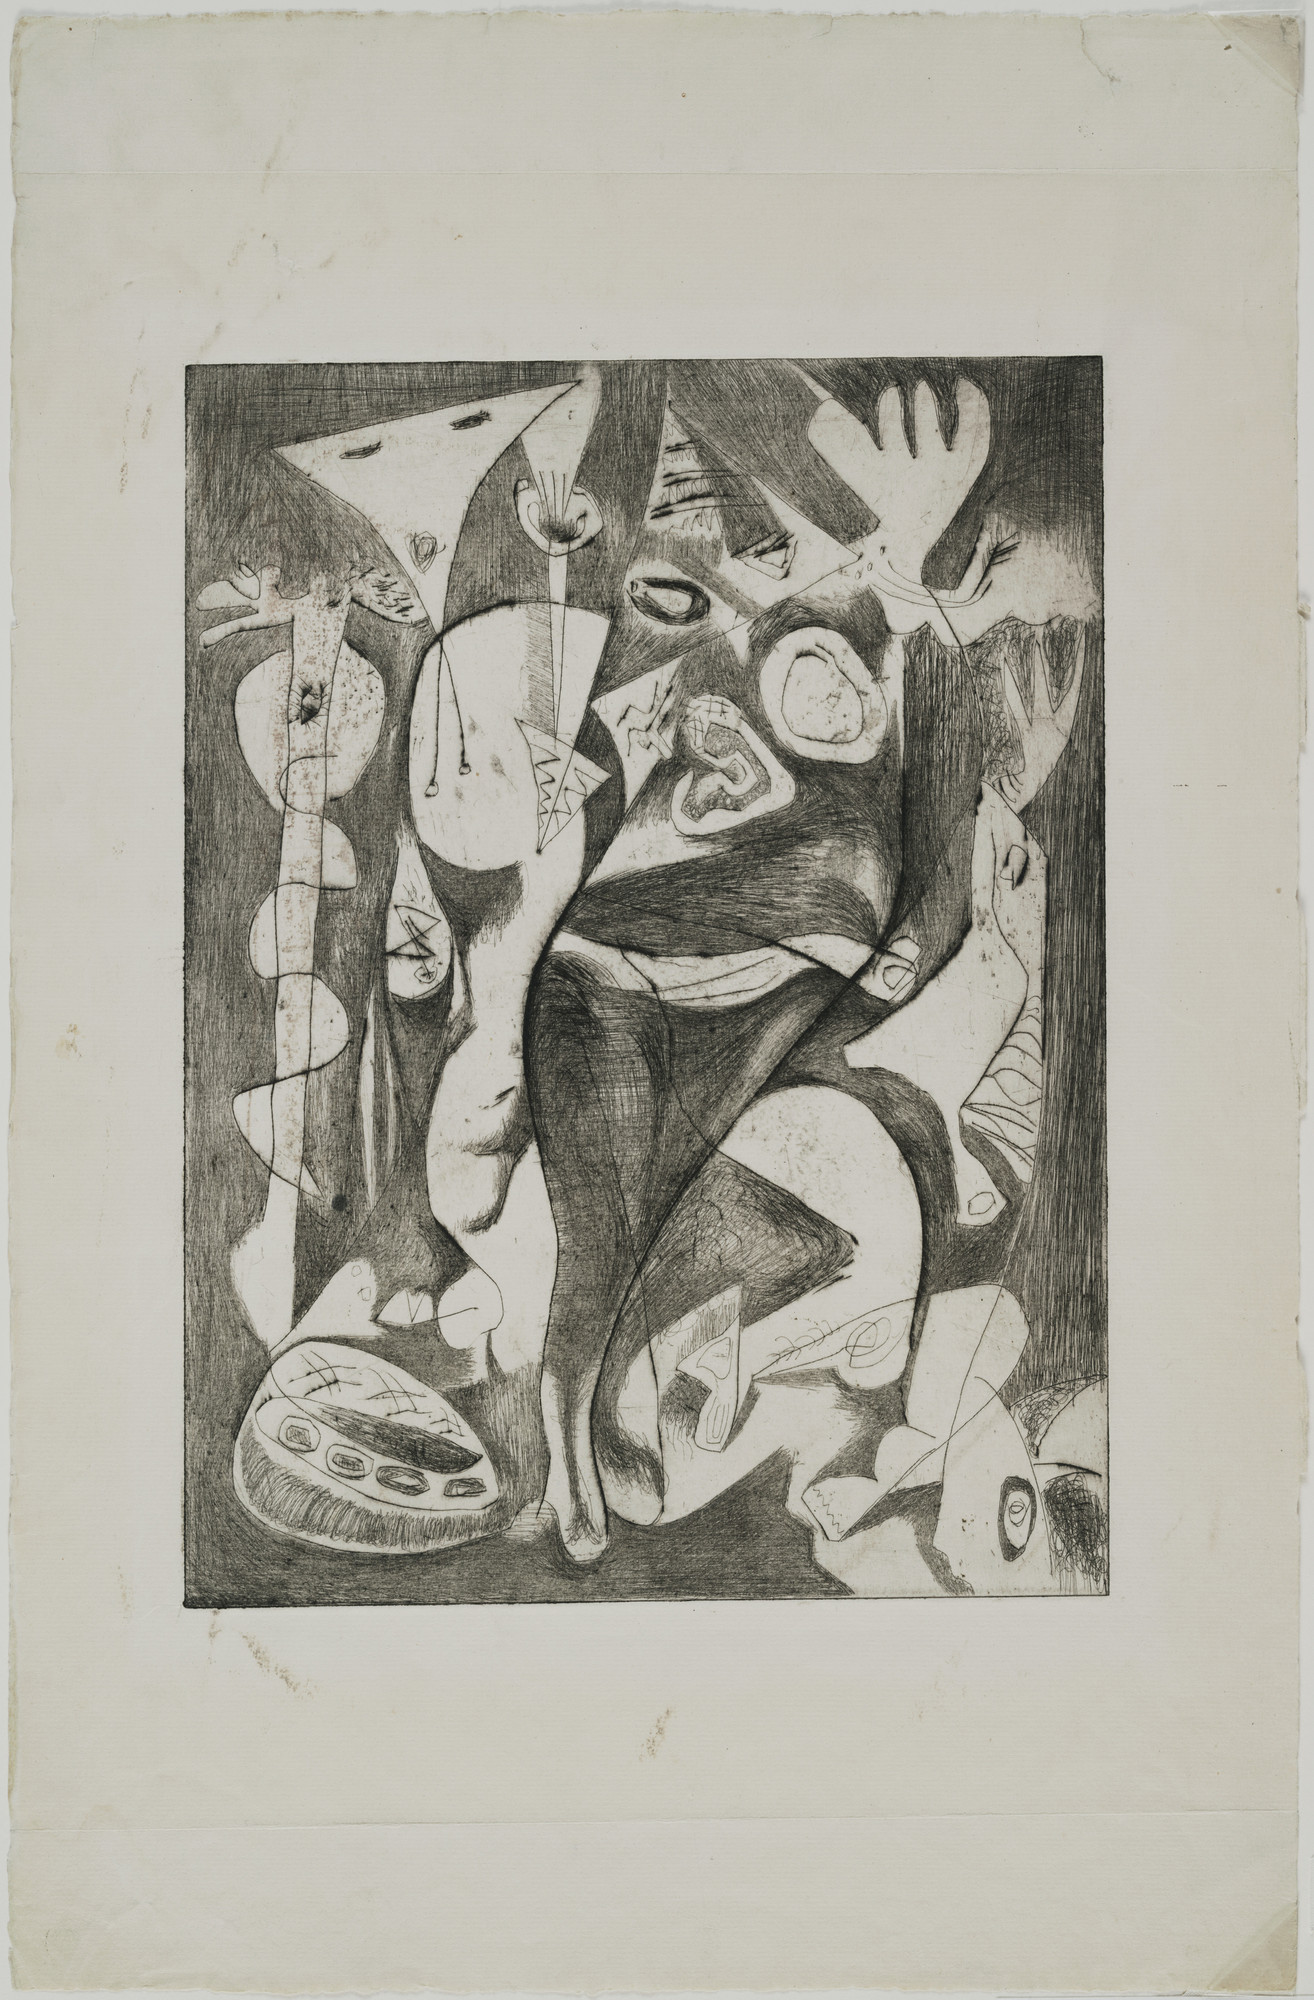 Jackson Pollock. Untitled (8), state I of II. 1944–1945. Engraving and drypoint, plate: 11 13/16 × 9ʺ (30 × 22.8 cm); sheet: 18 13/16 × 12 1/4ʺ (47.8 × 31.1 cm). Publisher: unpublished. Printer: the artist at Atelier 17, New York. Edition: unique trial proof before the 1967 posthumous proofs. Gift of Lee Krasner Pollock. © 2016 Pollock-Krasner Foundation / Artists Rights Society (ARS), New York